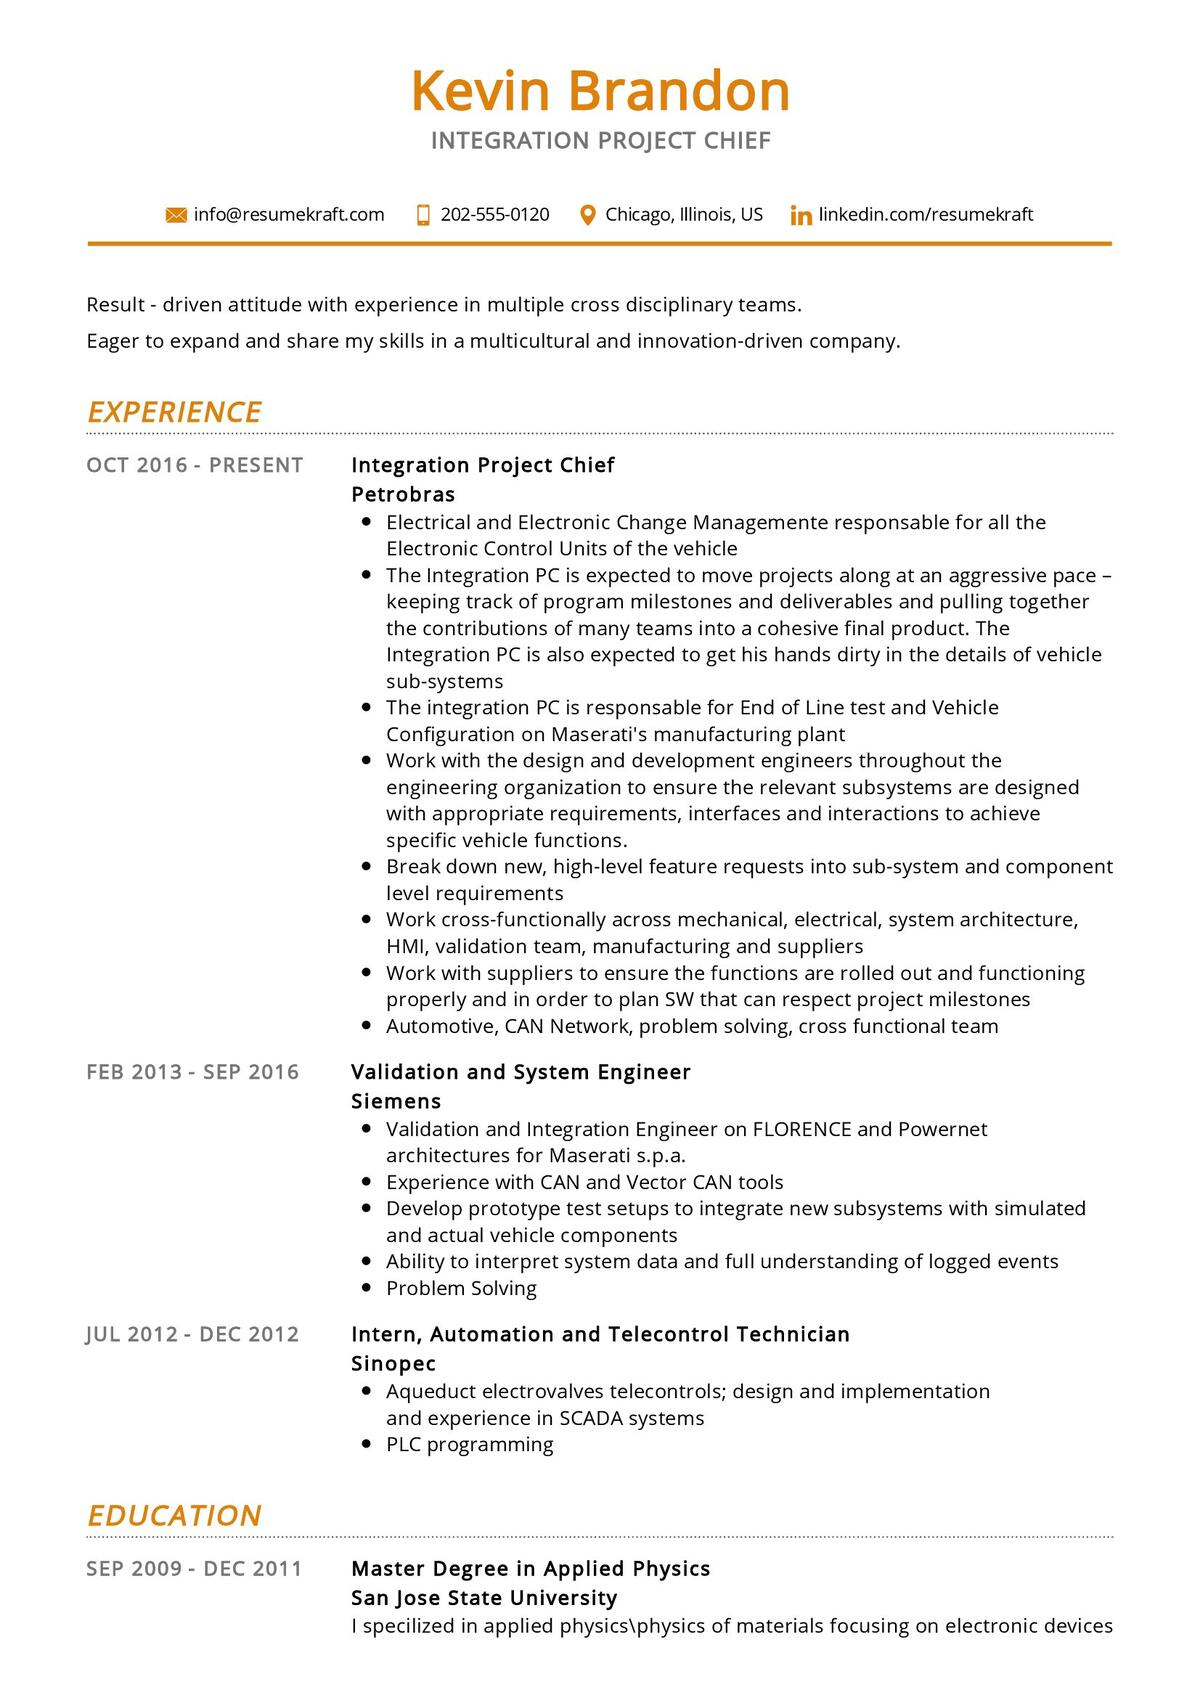 Integration Project Chief Resume